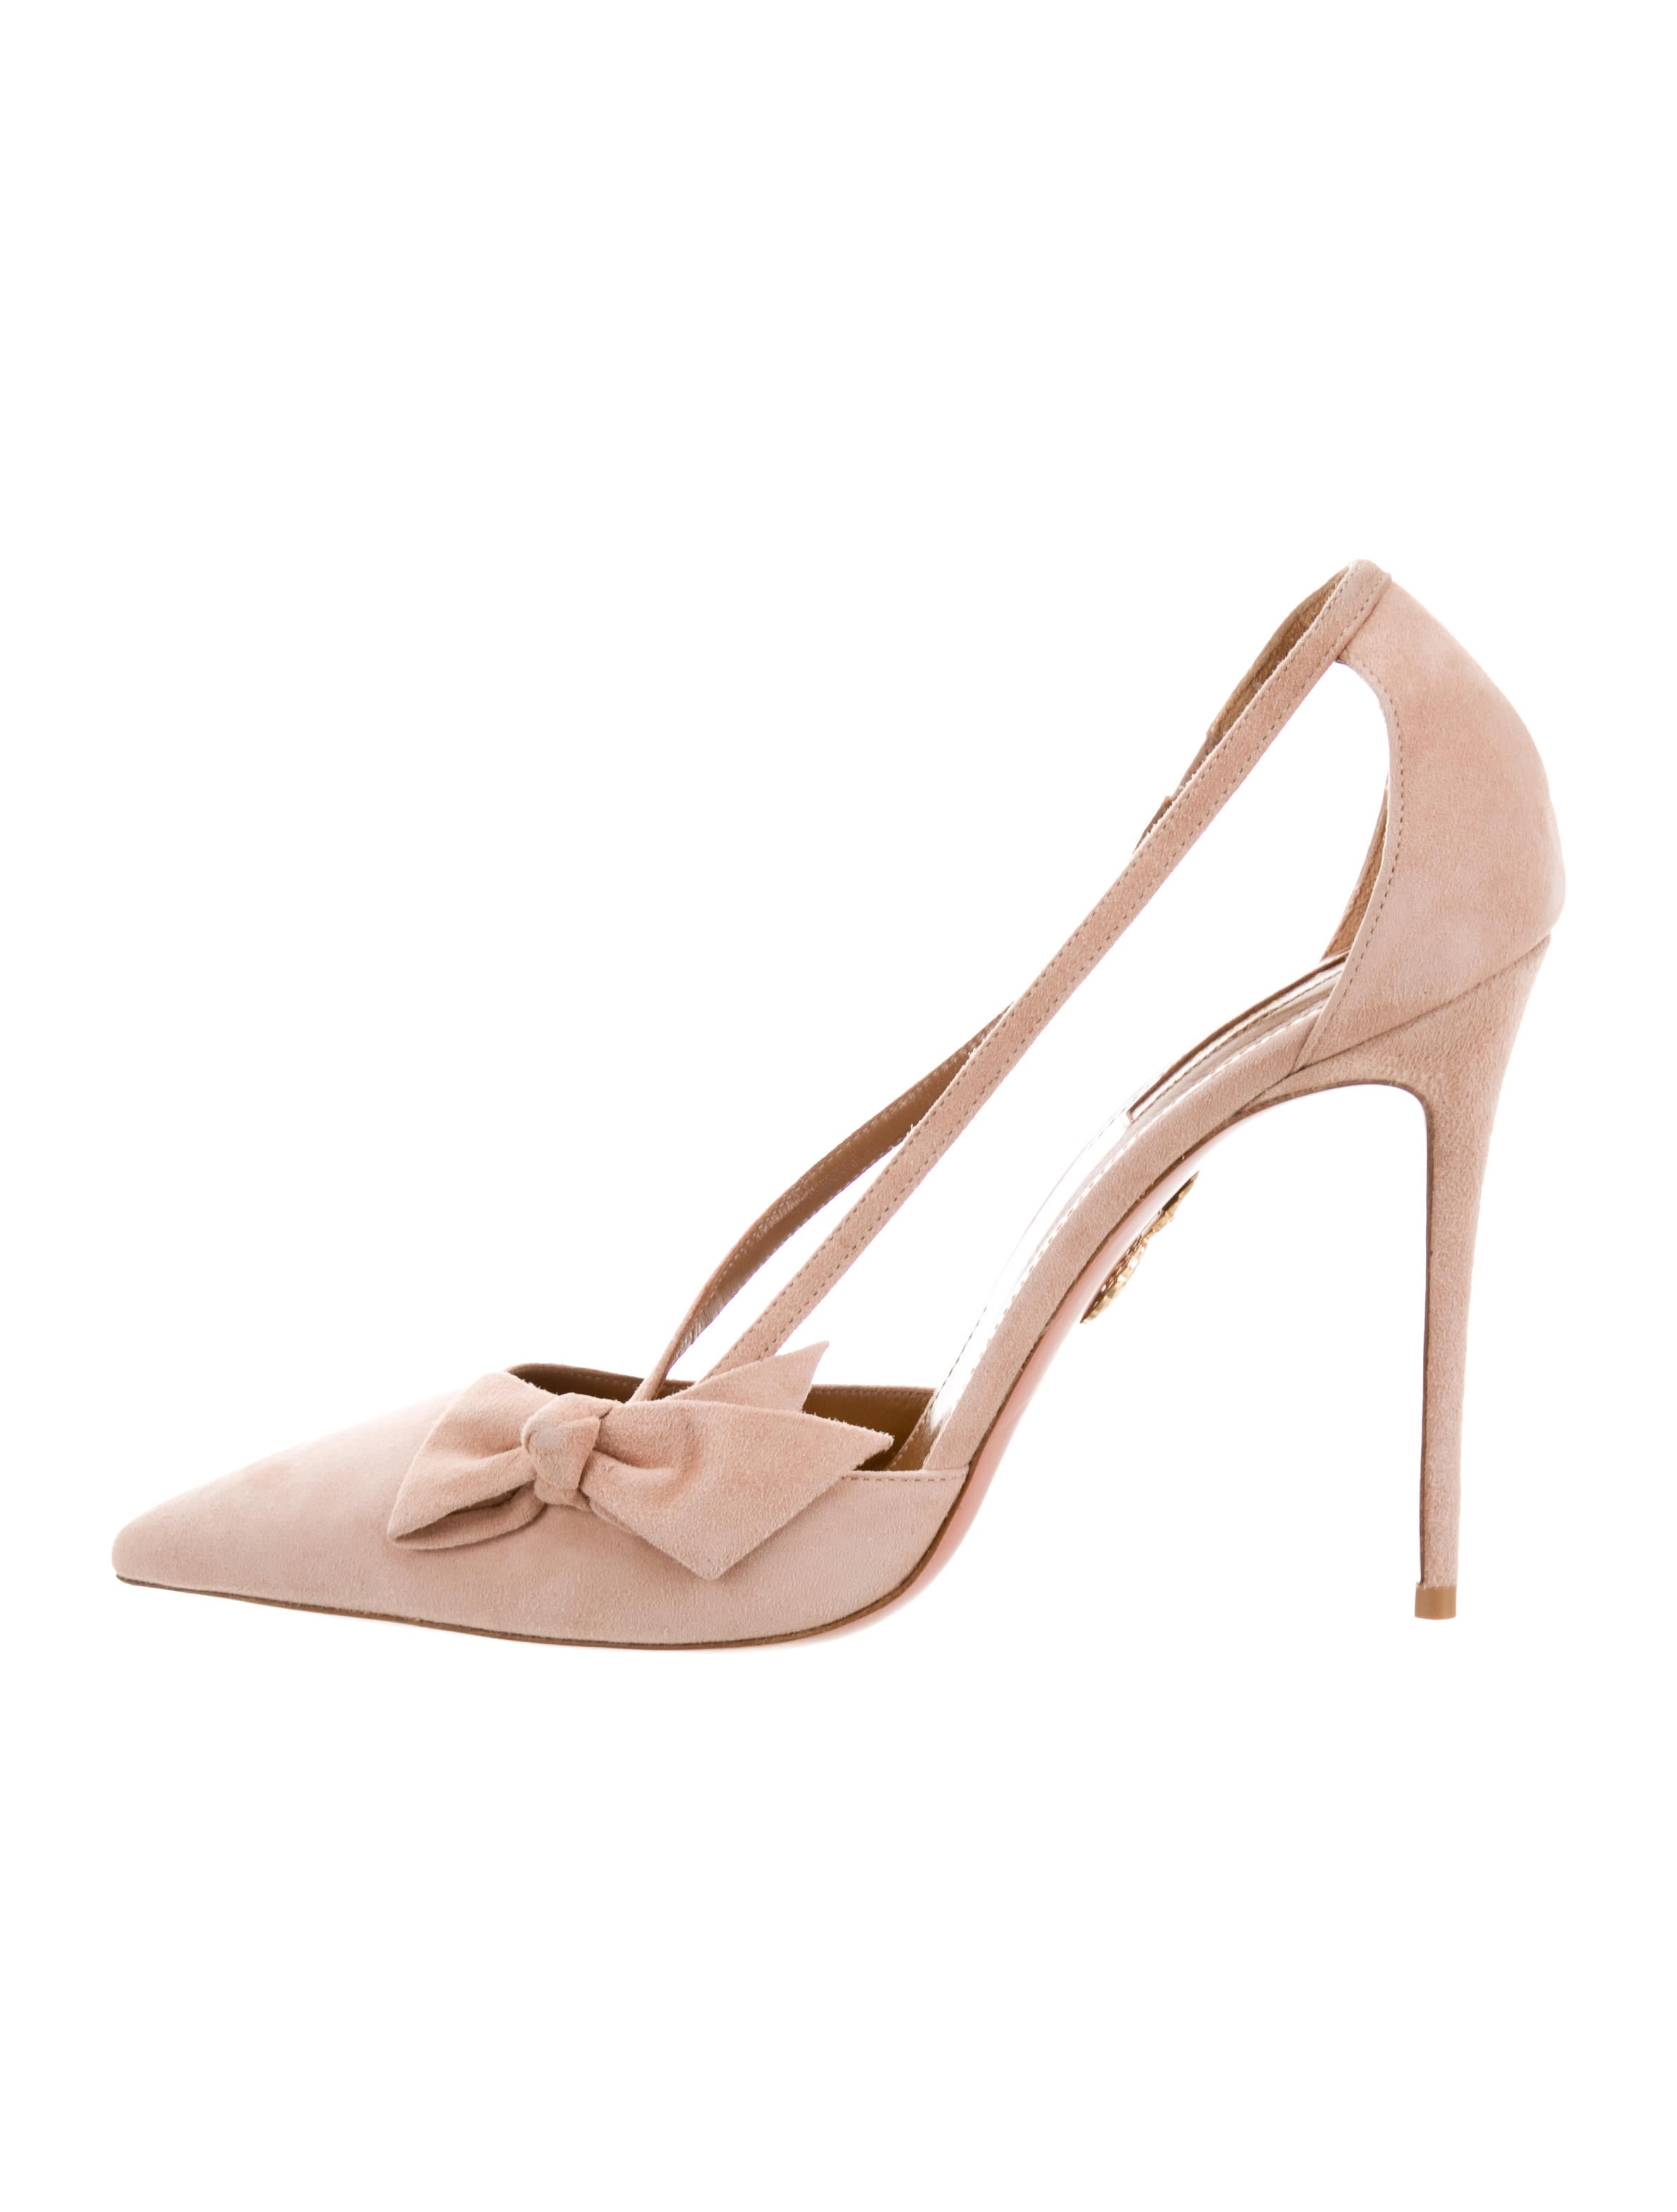 Aquazzura Parisienne 105 Pumps w/ Tags how much online nicekicks for sale yAL7f